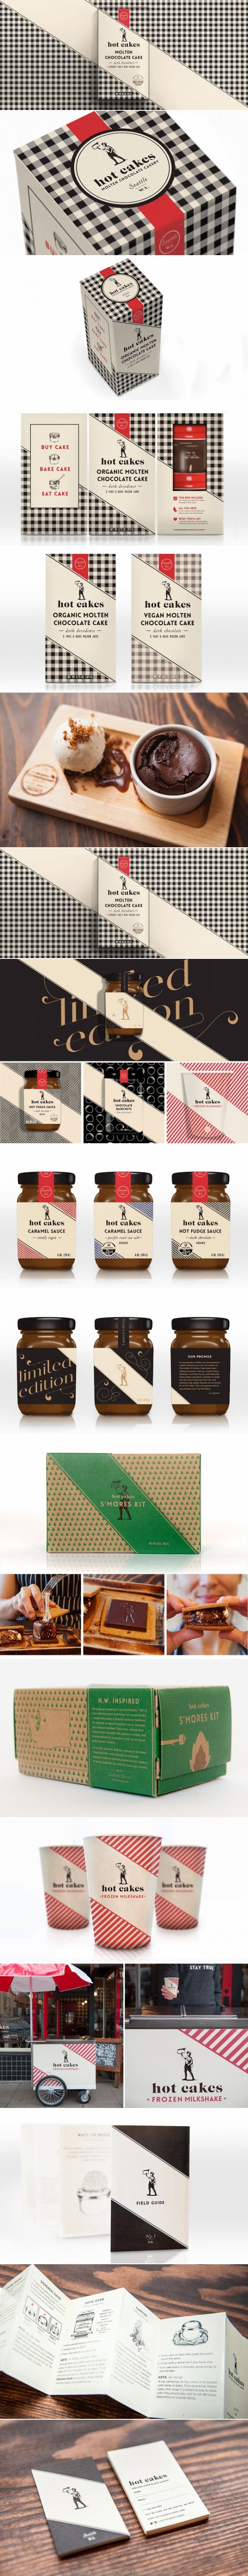 pinterest.com/fra411 #visual #identity - Hot Cakes Molten Chocolate Cakery by Creative Retail Packaging, Inc.